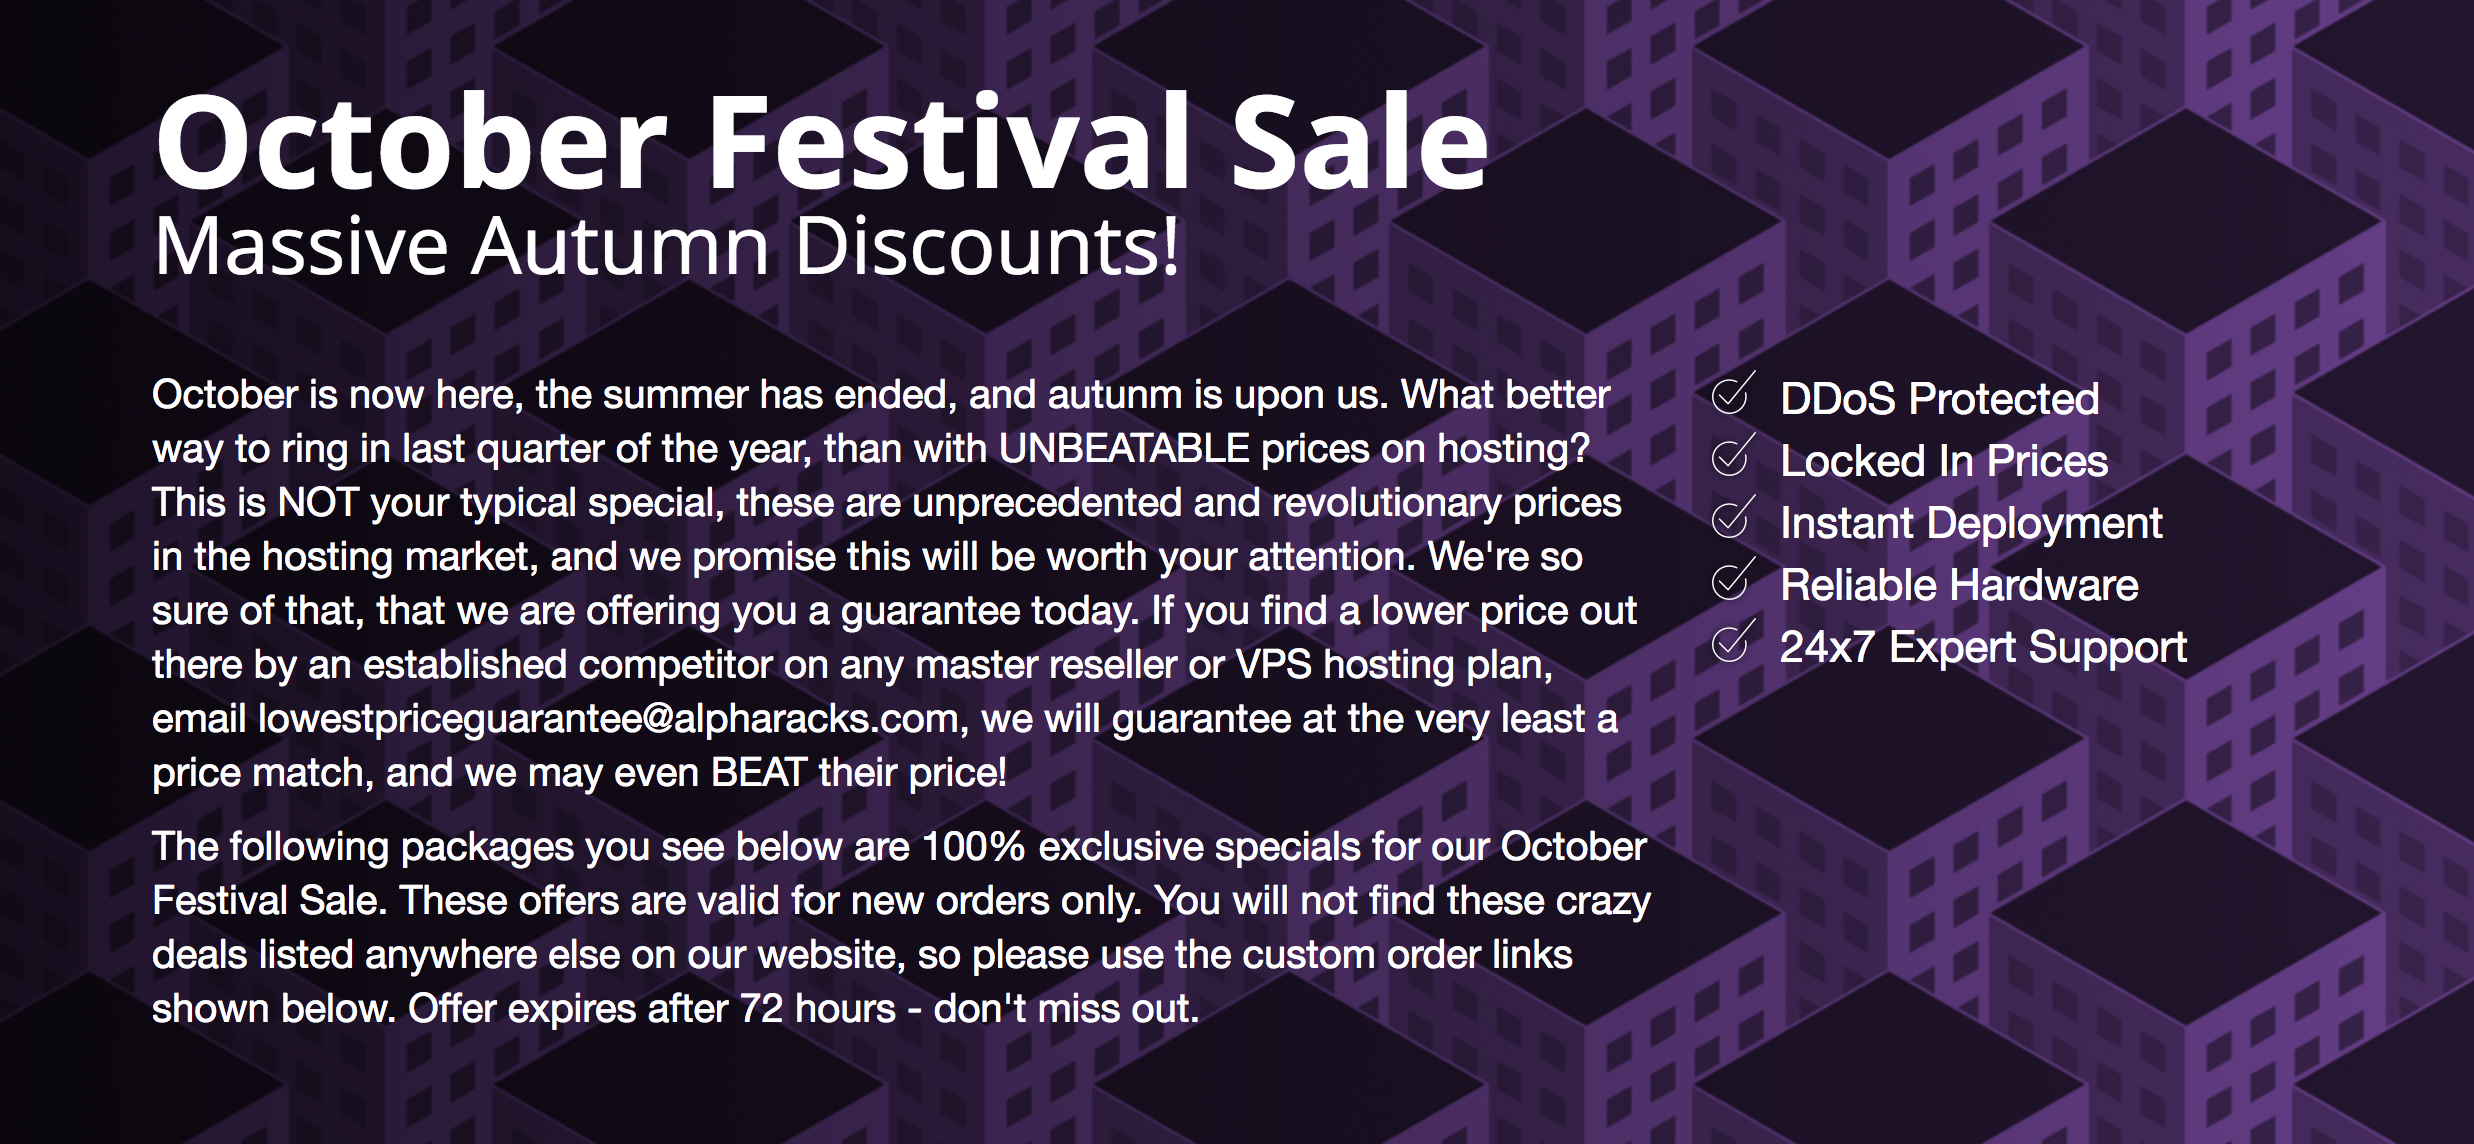 Alpharacks October Festival Sale